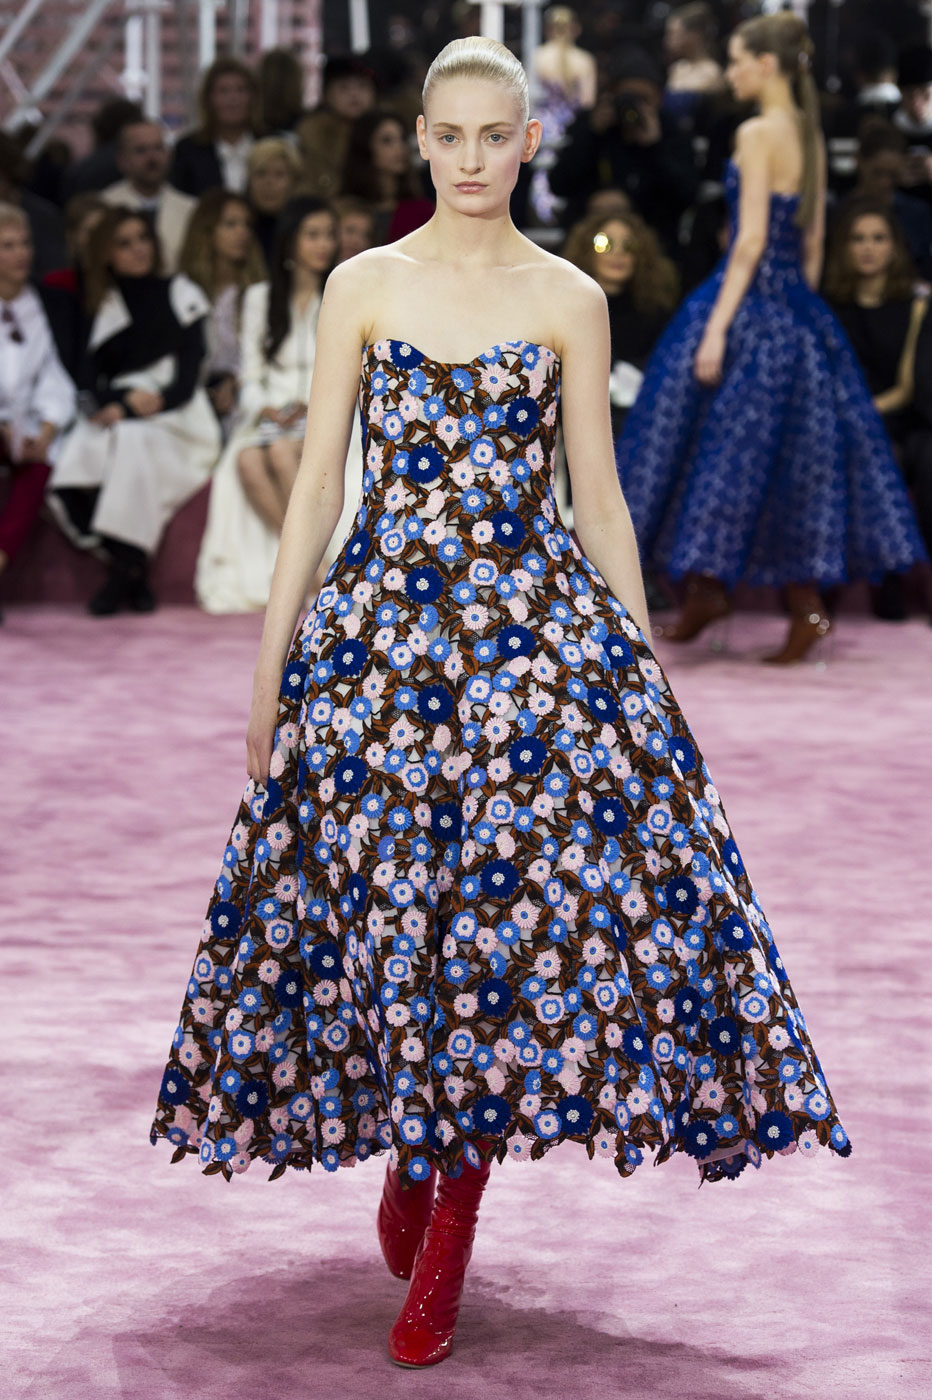 Christian-Dior-fashion-runway-show-haute-couture-paris-spring-summer-2015-the-impression-076